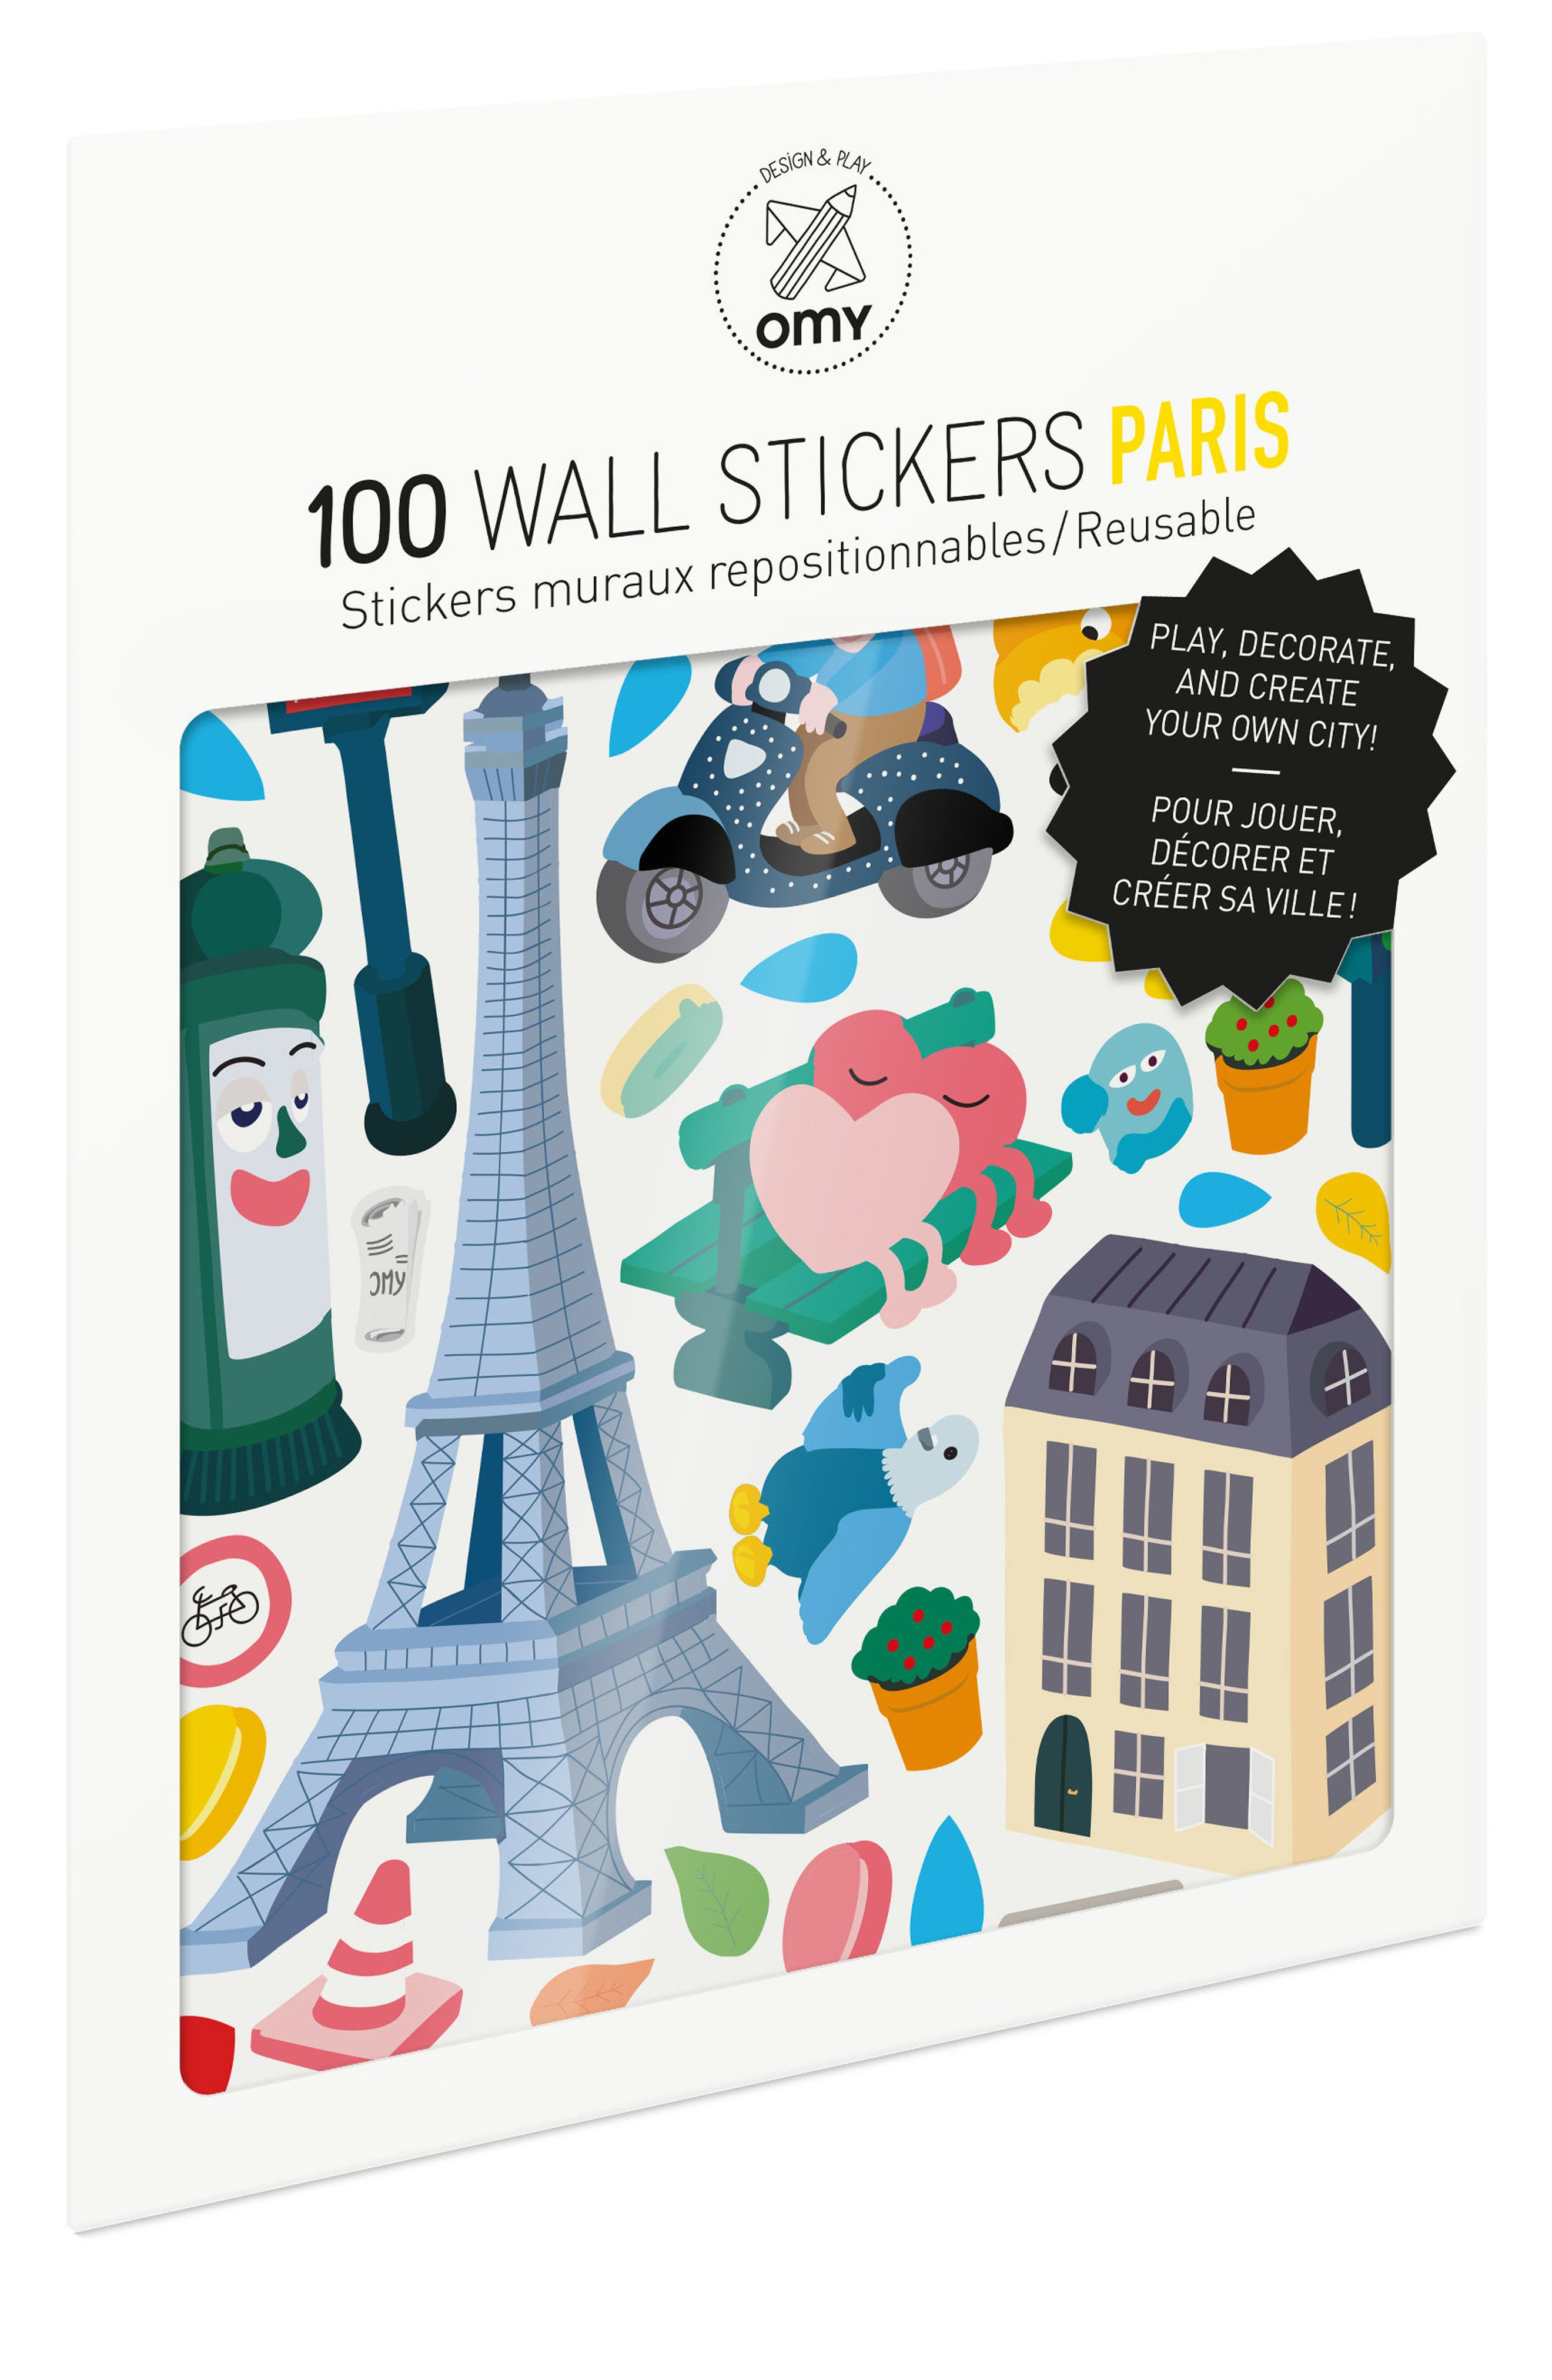 OMY Set of 100 Paris Reusable Wall Stickers